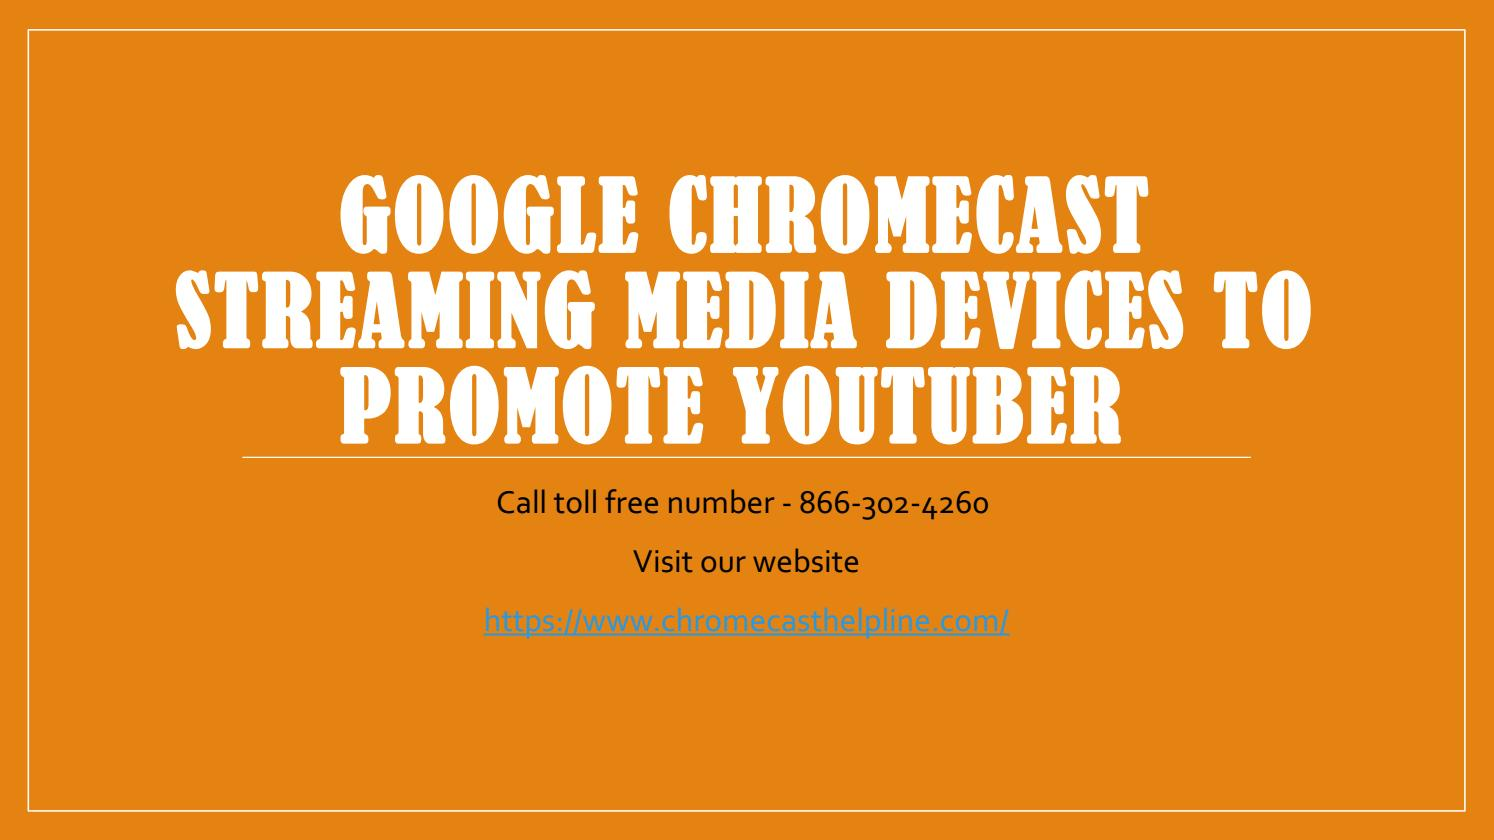 Google Chromecast Streaming Media Devices To Promote